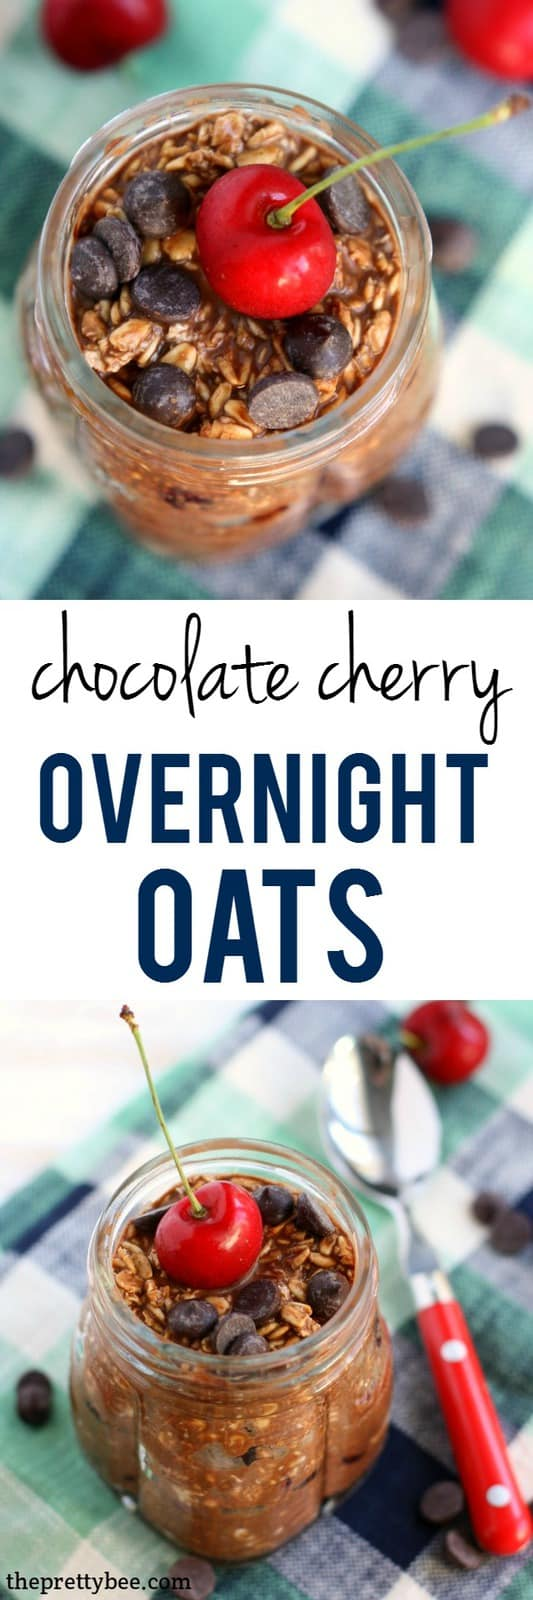 An easy and delicious recipe for chocolate cherry overnight oats. You'll love waking up for this breakfast! #vegan #glutenfree #dairyfree